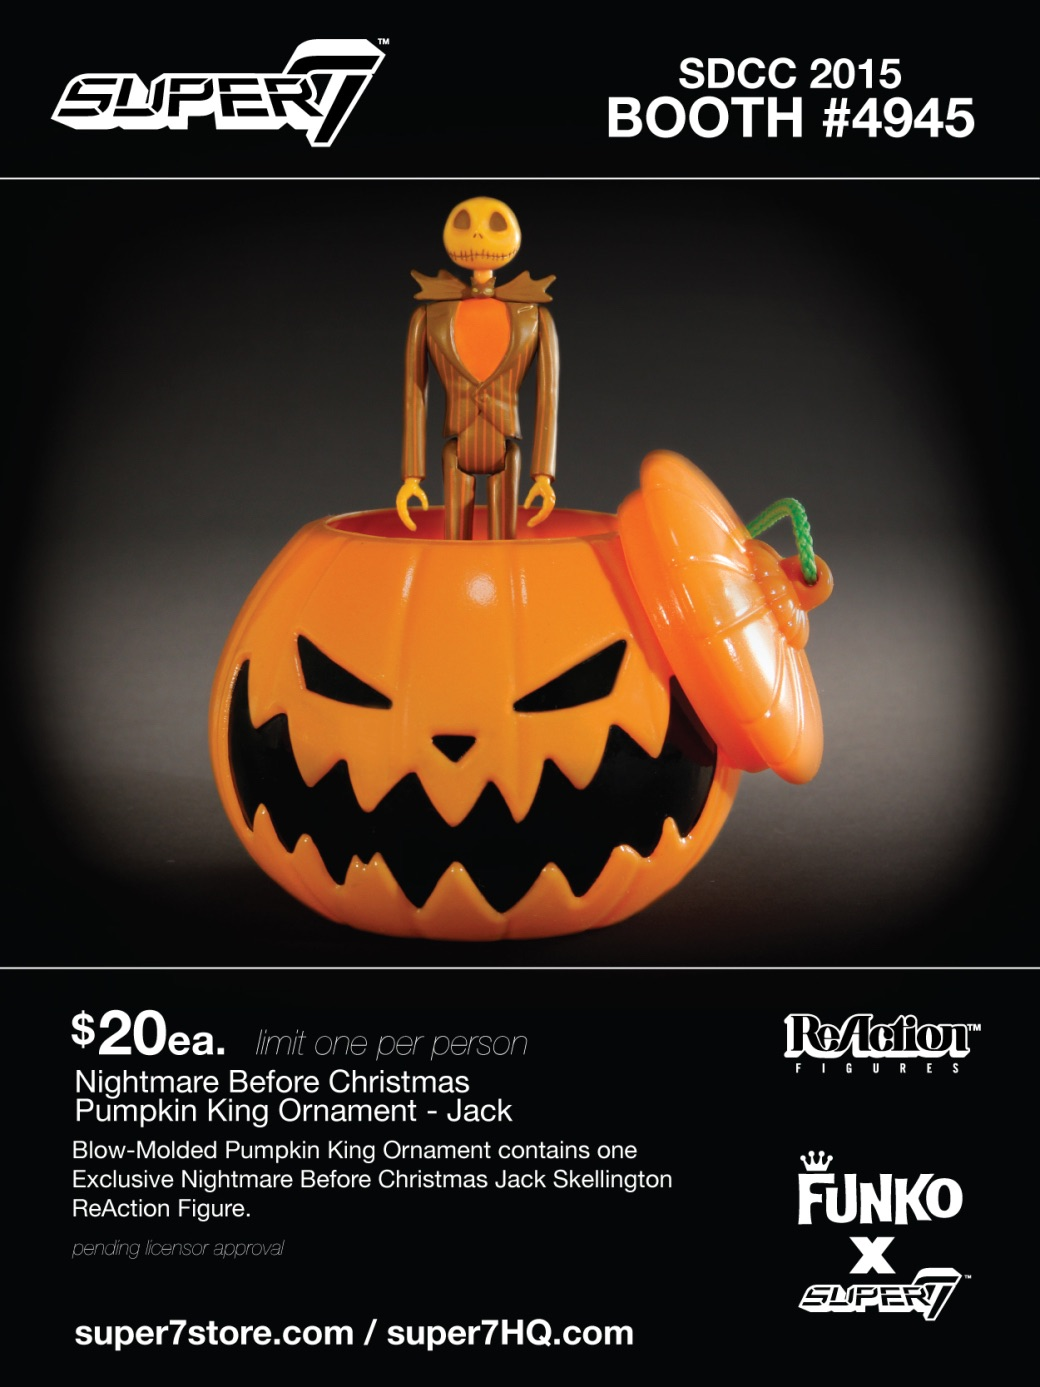 Details On Nightmare Before Christmas Funko Reaction SDCC Exclusives